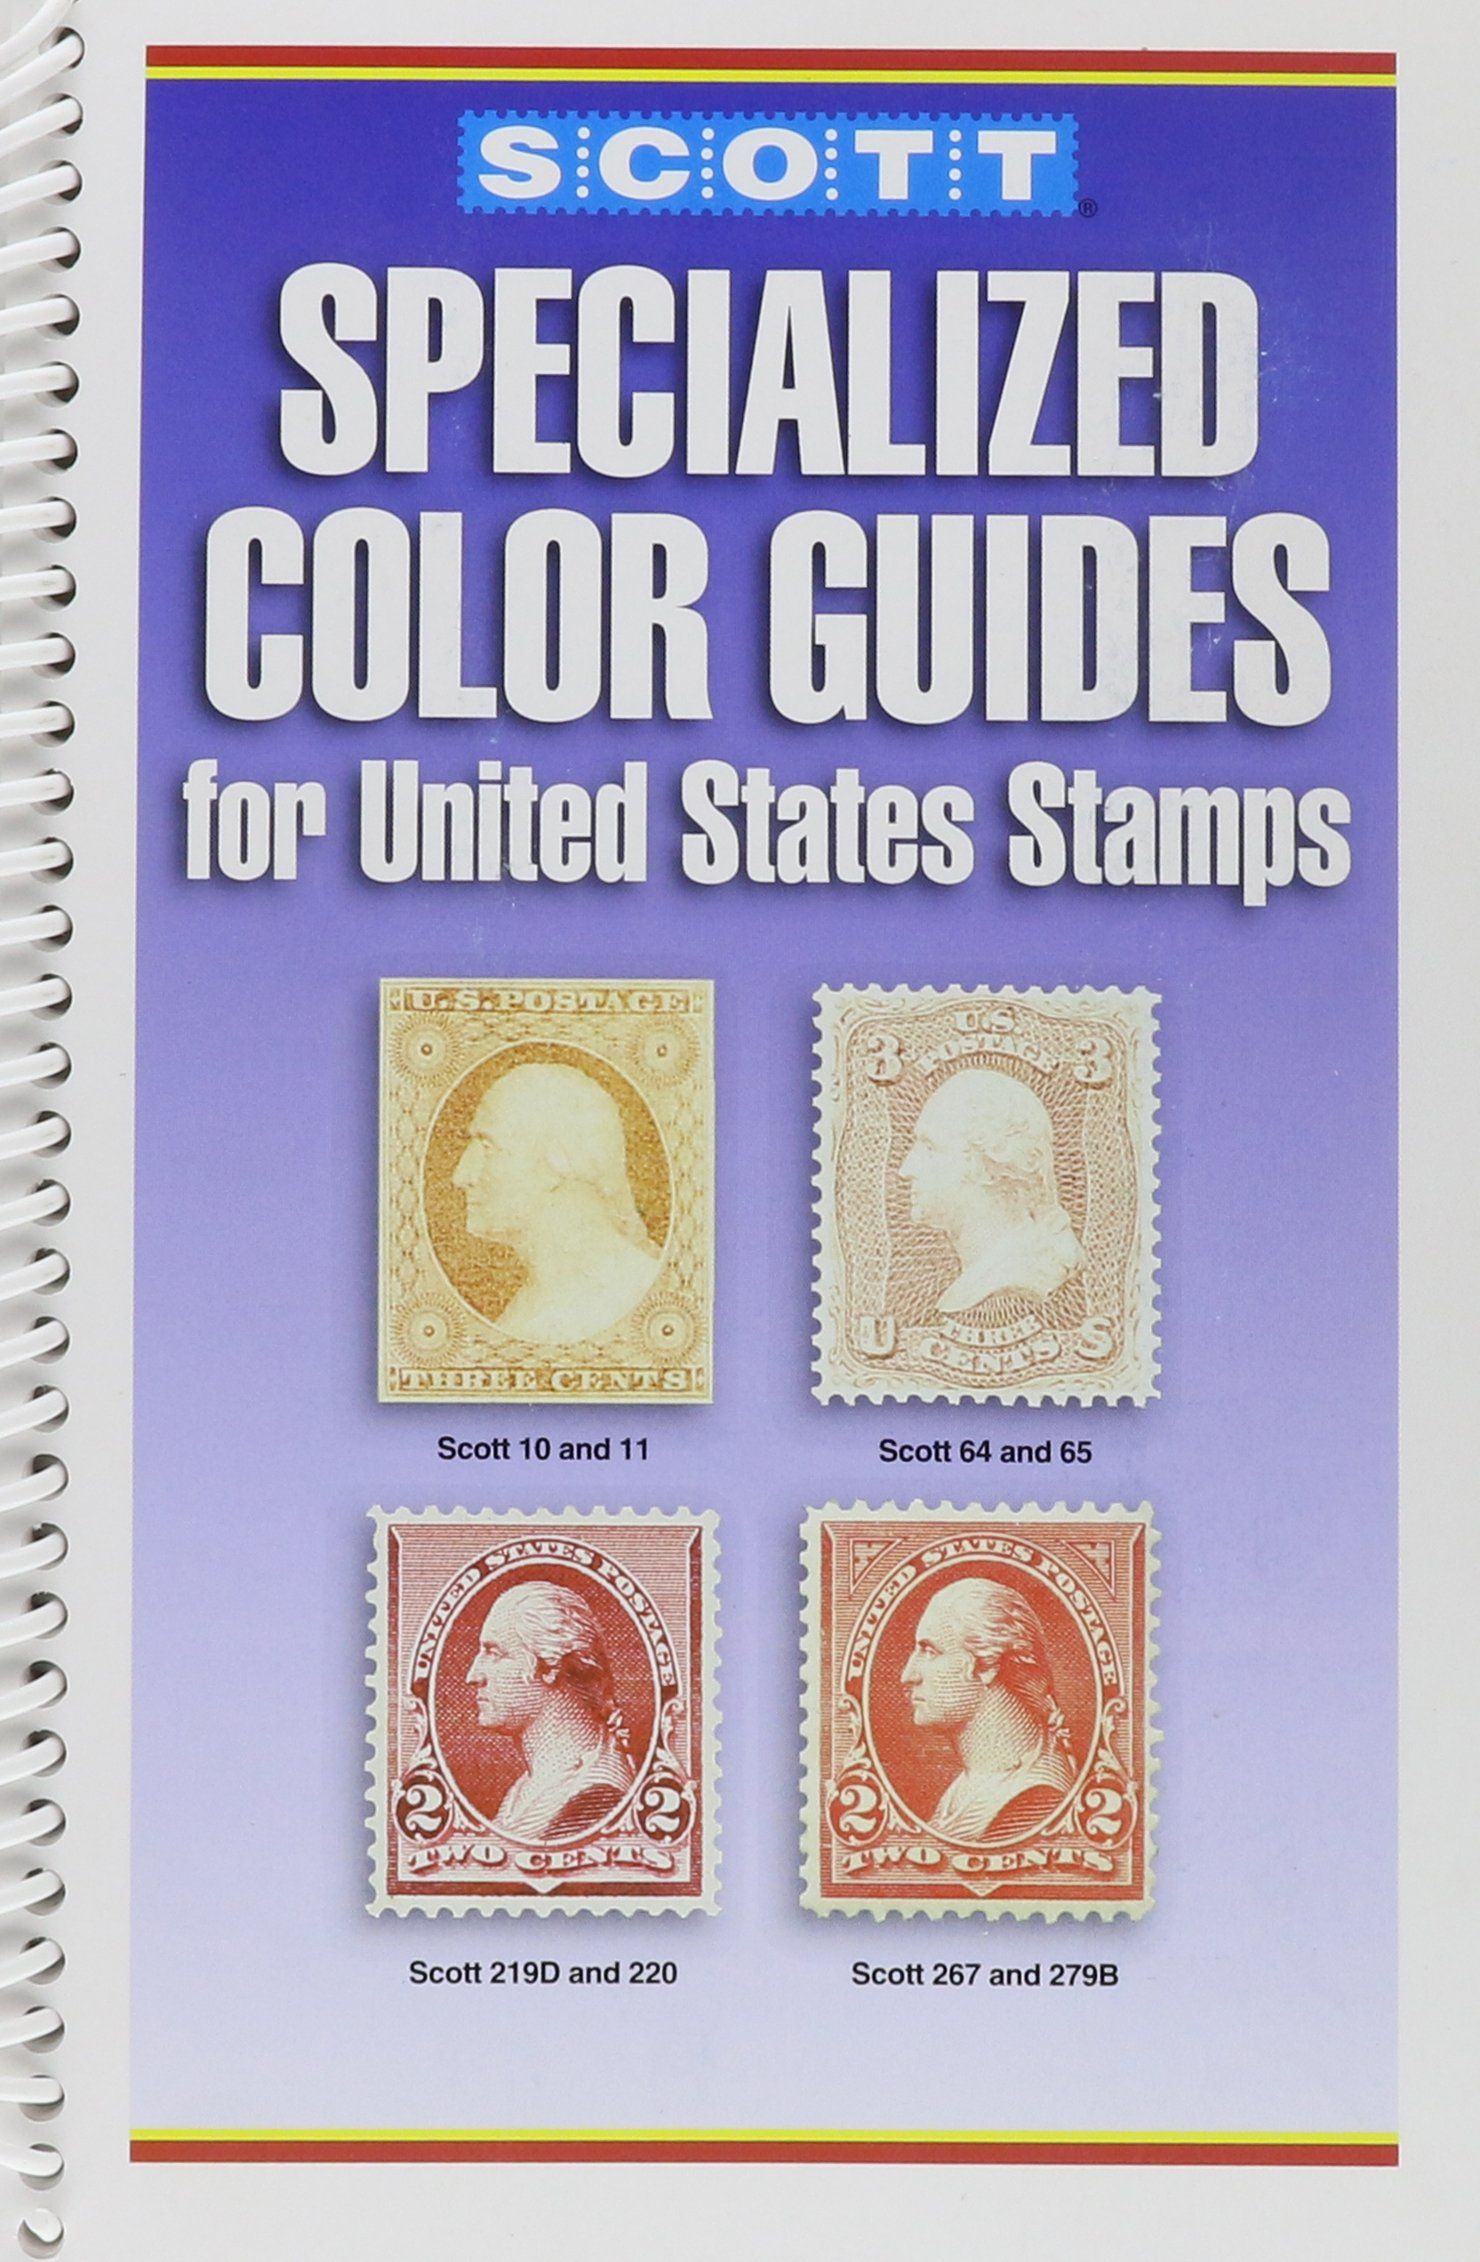 Scotts Specialized Color Guide For United States Stamps 9780894873737 Books